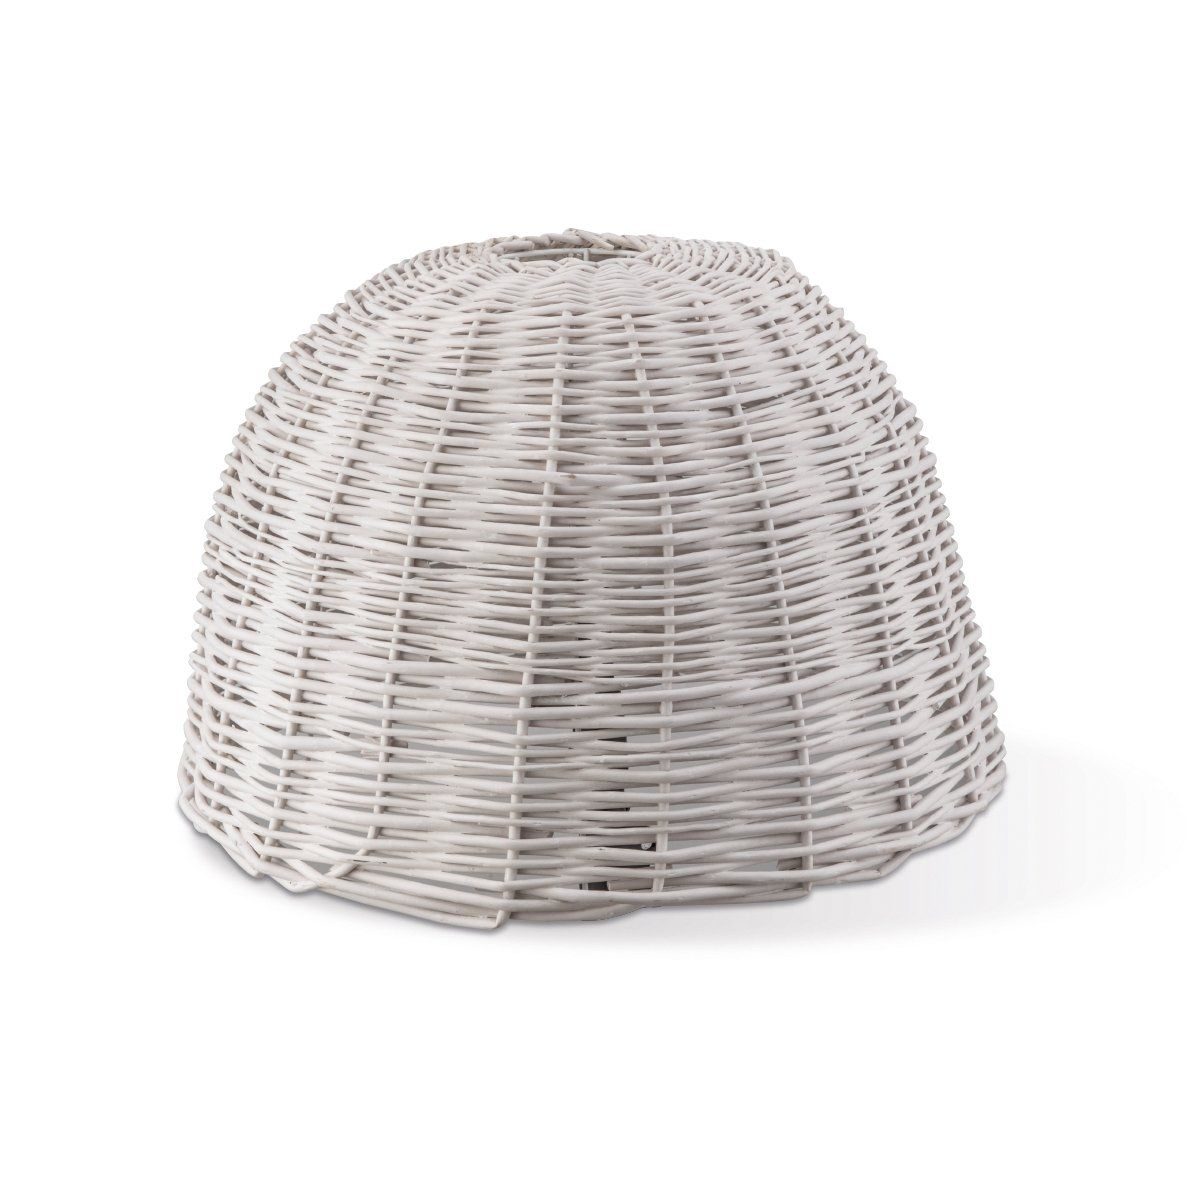 Home Sweet Home lampenkap Roseau Shell 50 rond - wit